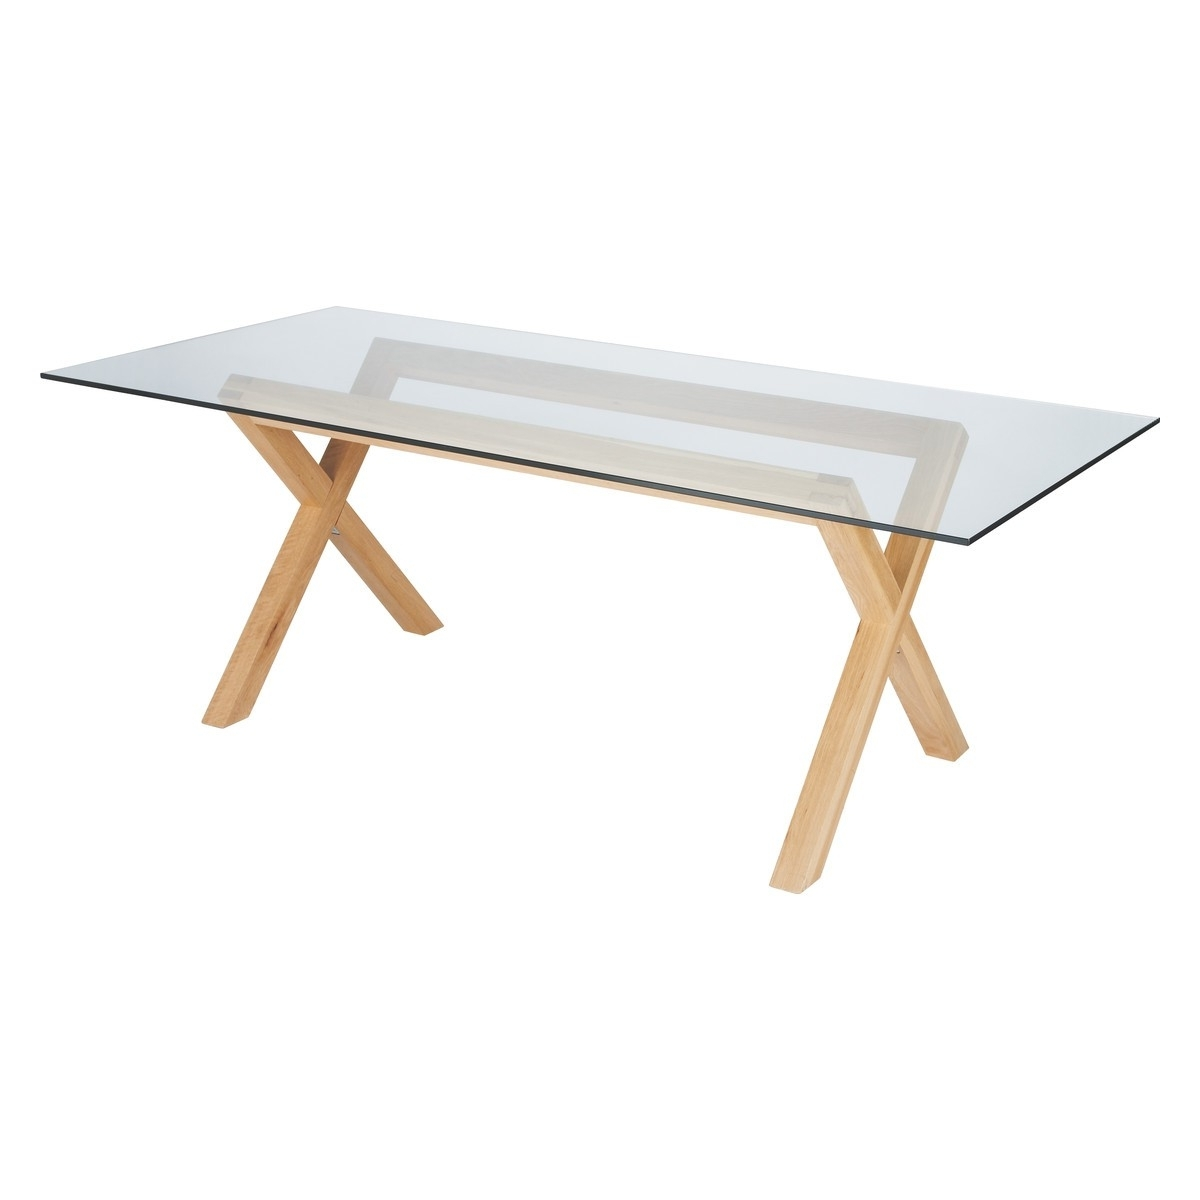 Buy Now At Habitat Uk In Most Current Glasses Dining Tables (View 8 of 25)